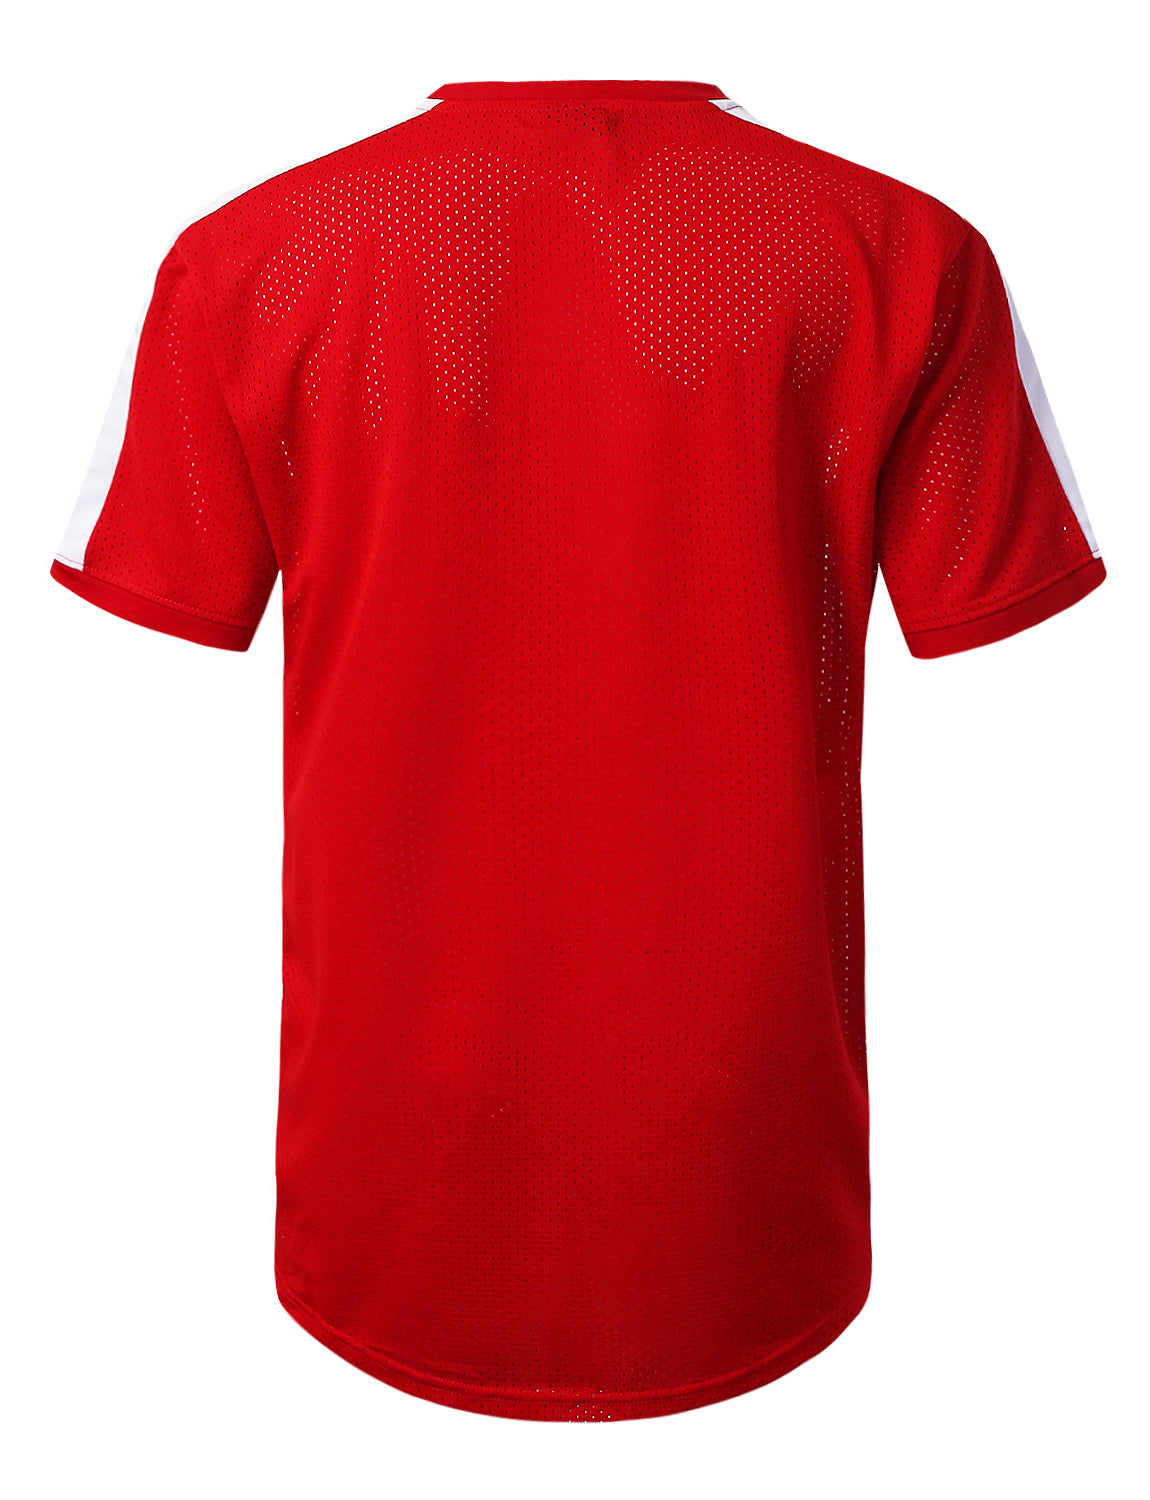 RED 3 Stripe Side Panel Mesh Jersey Tee - URBANCREWS